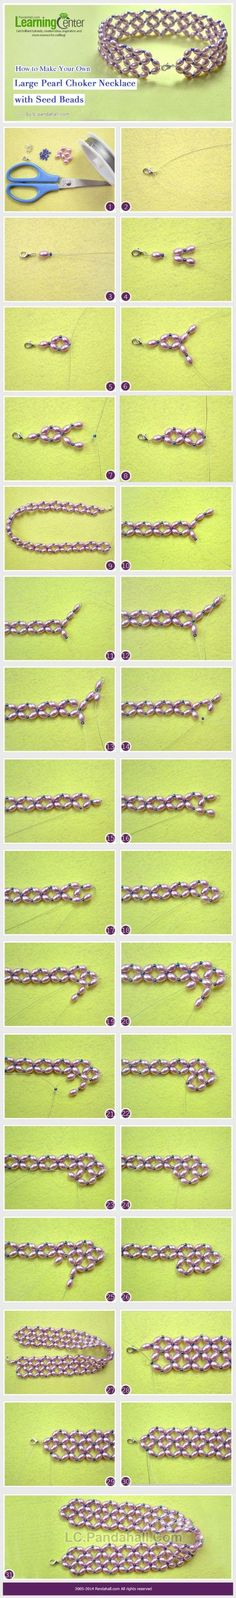 How to Make Your Own Large Pearl Choker Necklace with Seed Beads by Jersica